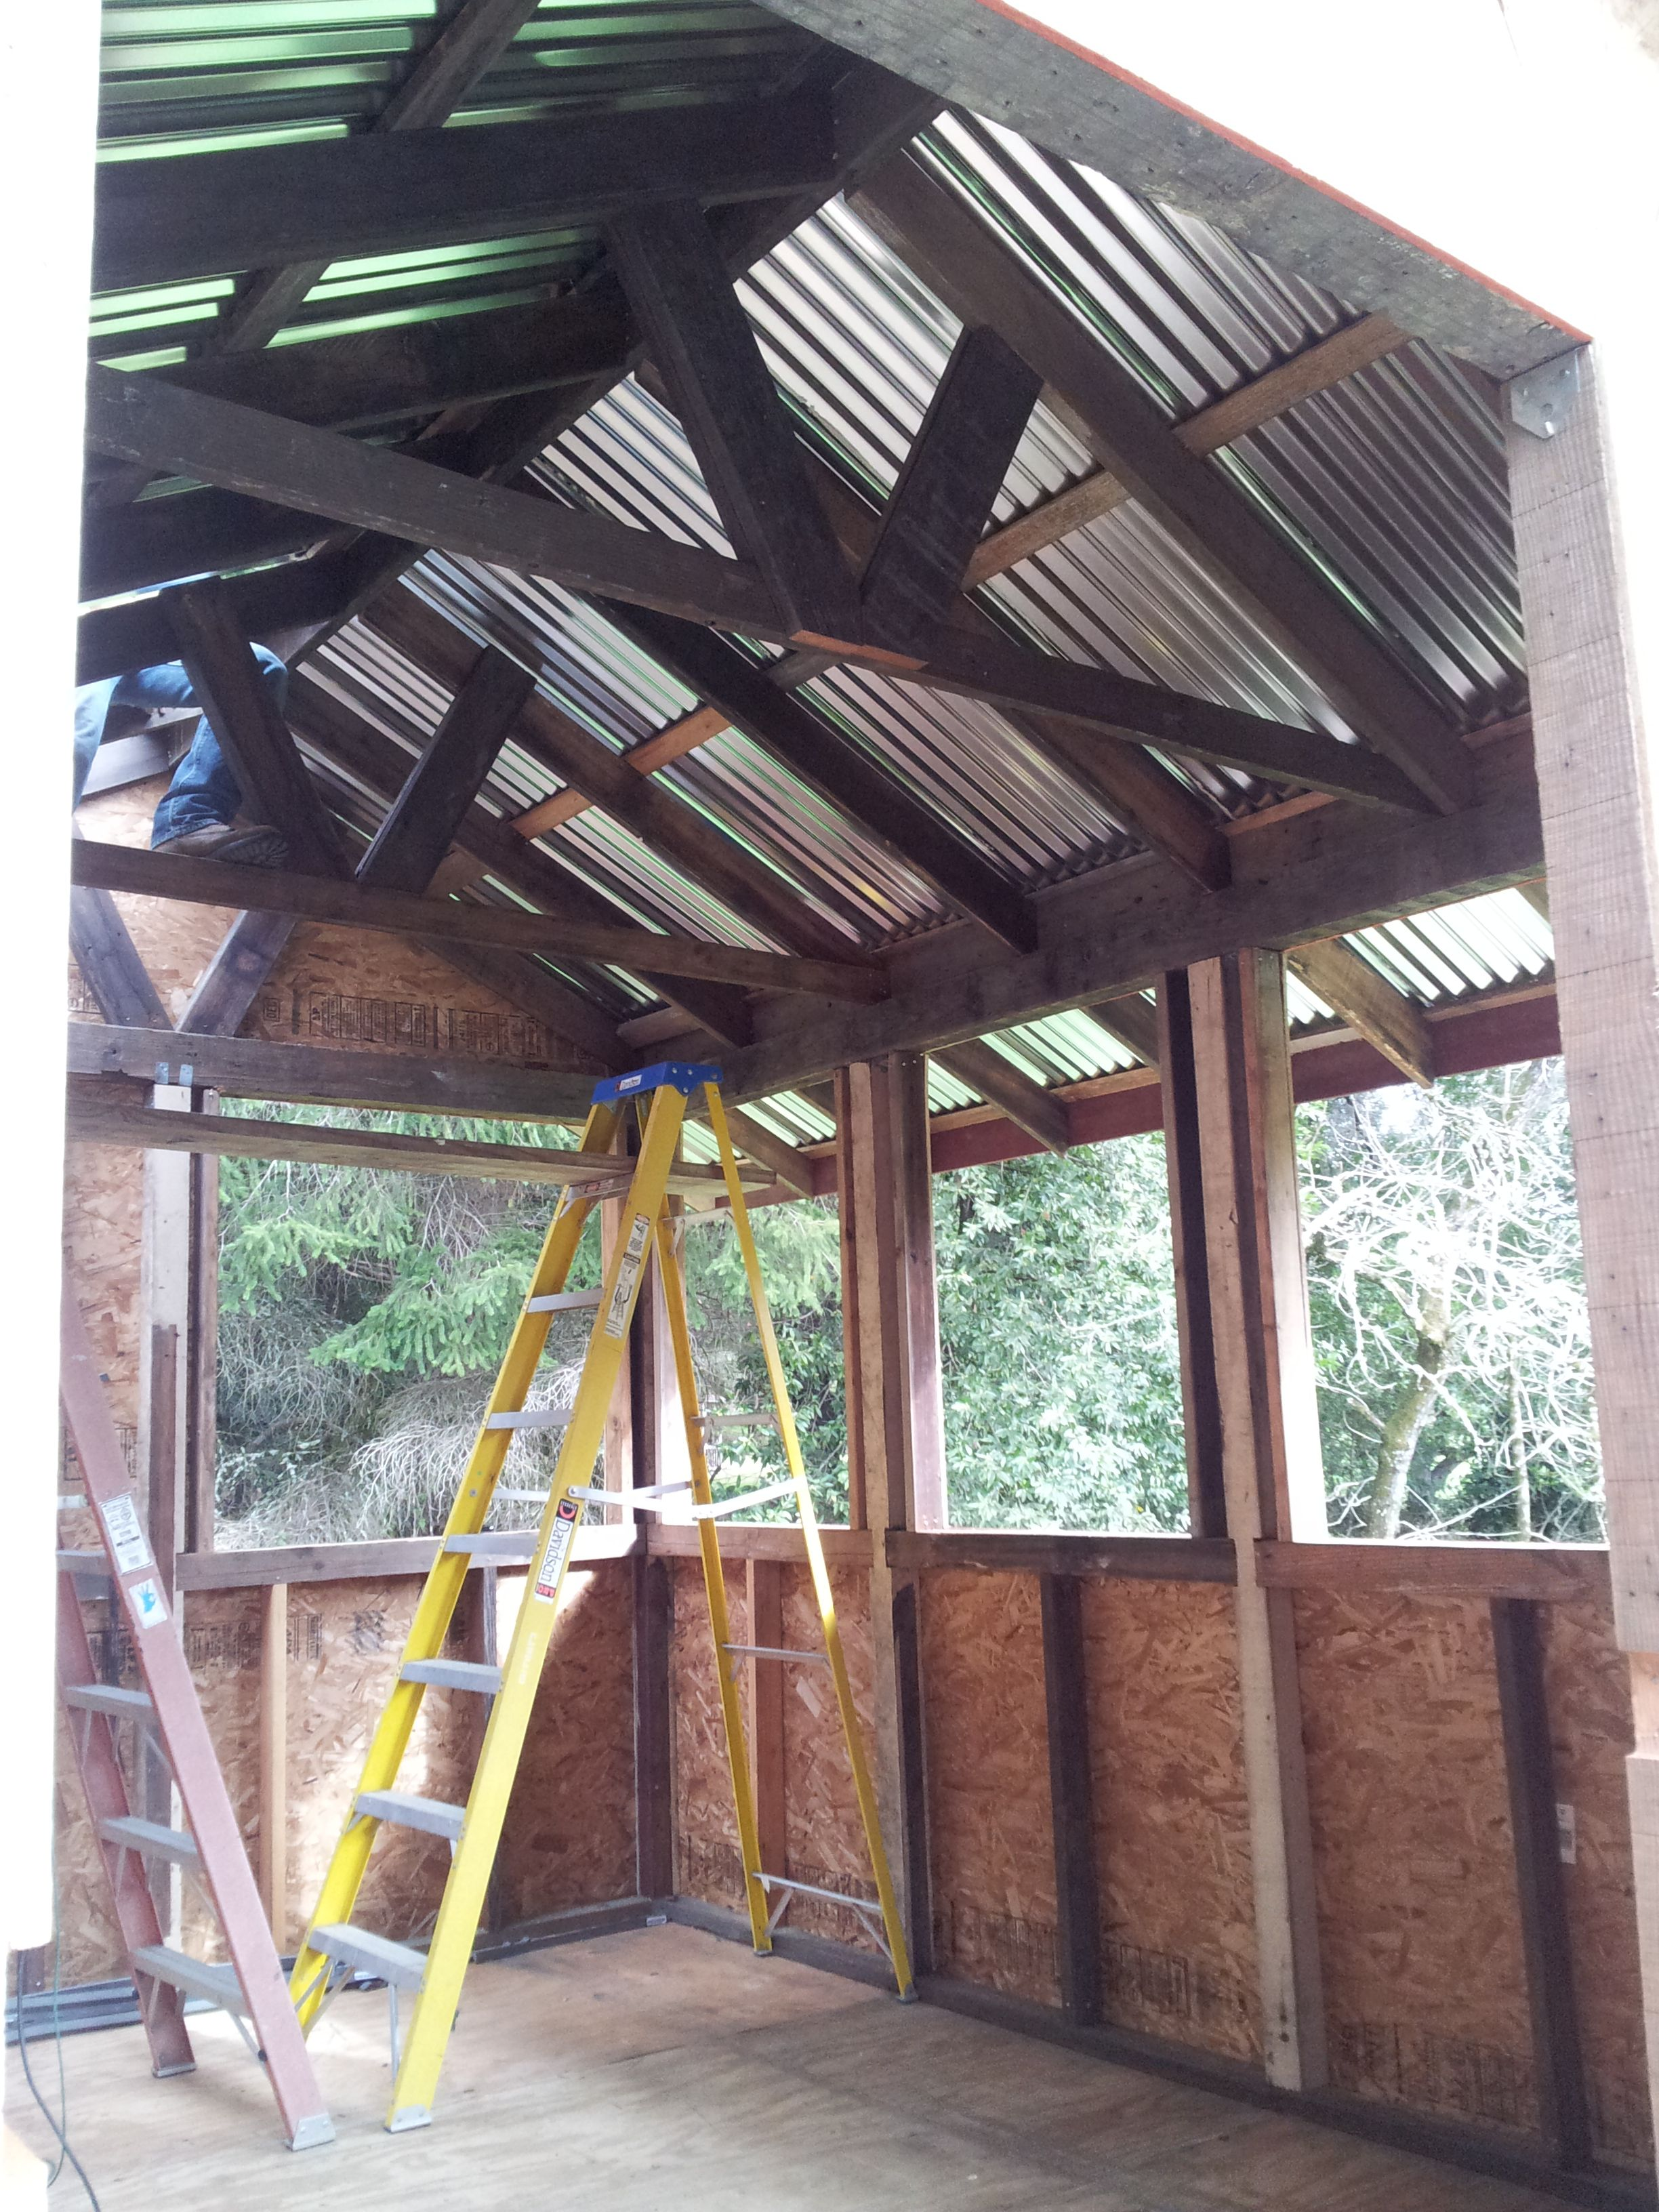 Corrugated metal roof | Modern roofing, Fibreglass roof